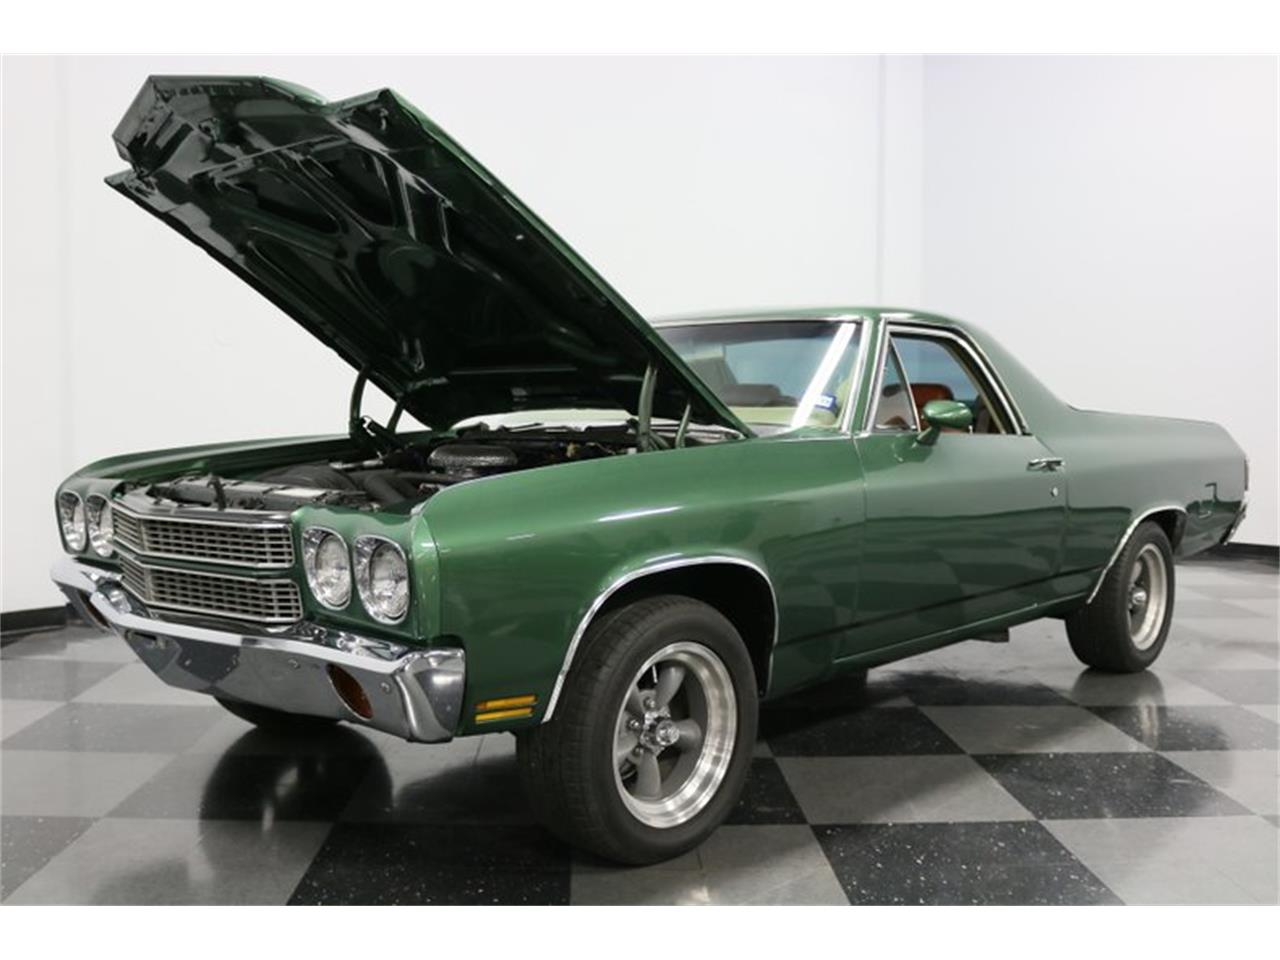 Large Picture of '70 Chevrolet El Camino located in Ft Worth Texas - $24,995.00 Offered by Streetside Classics - Dallas / Fort Worth - Q9DT